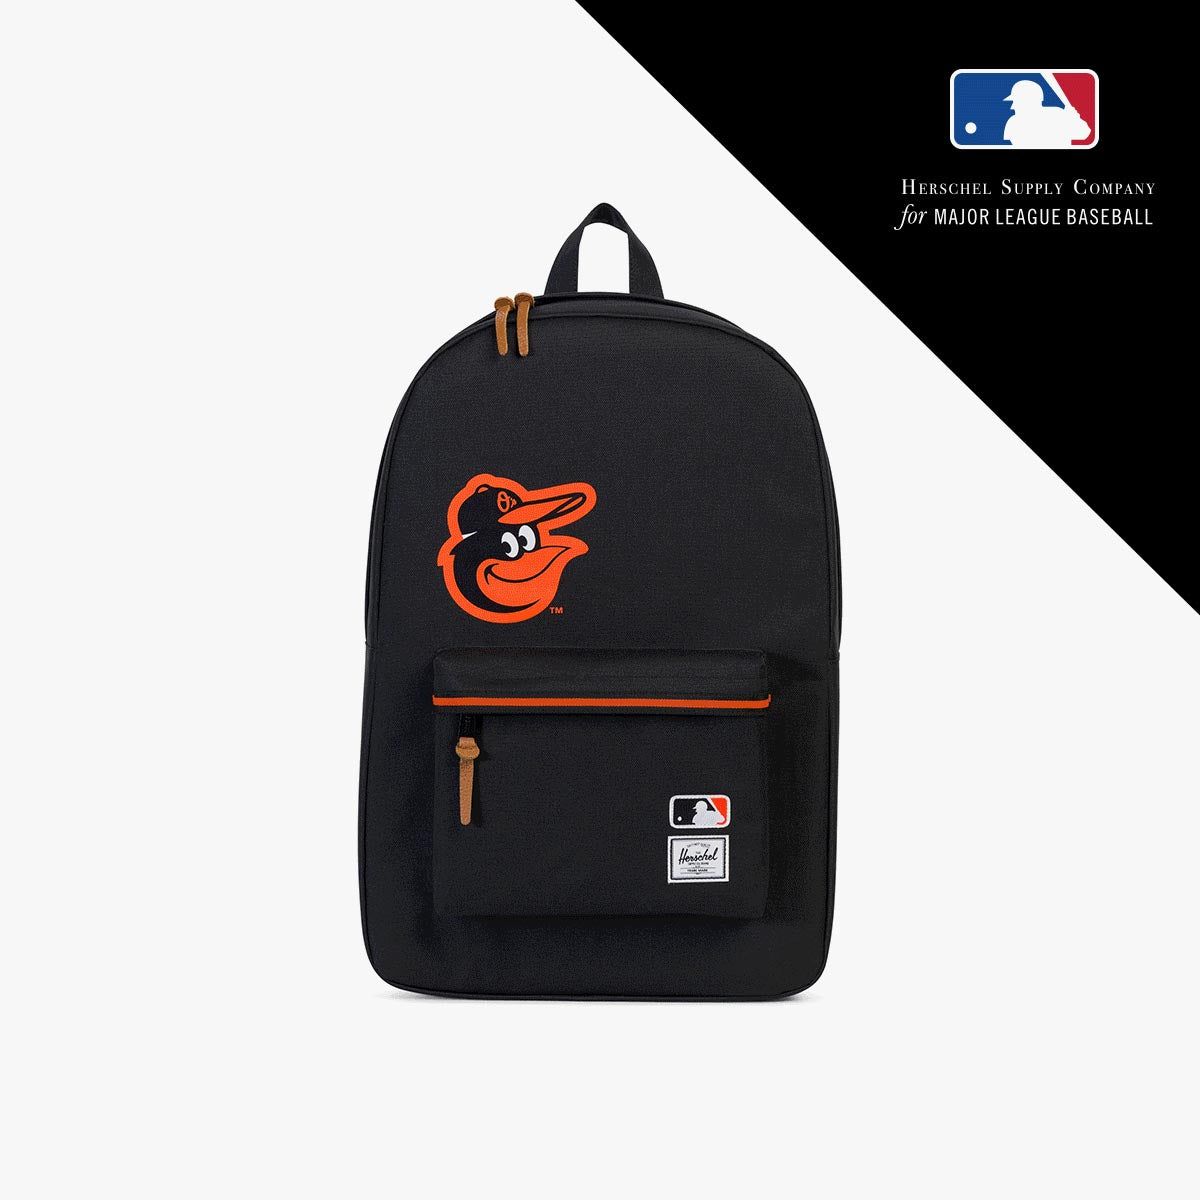 Herschel Supply Company | Major League Baseball